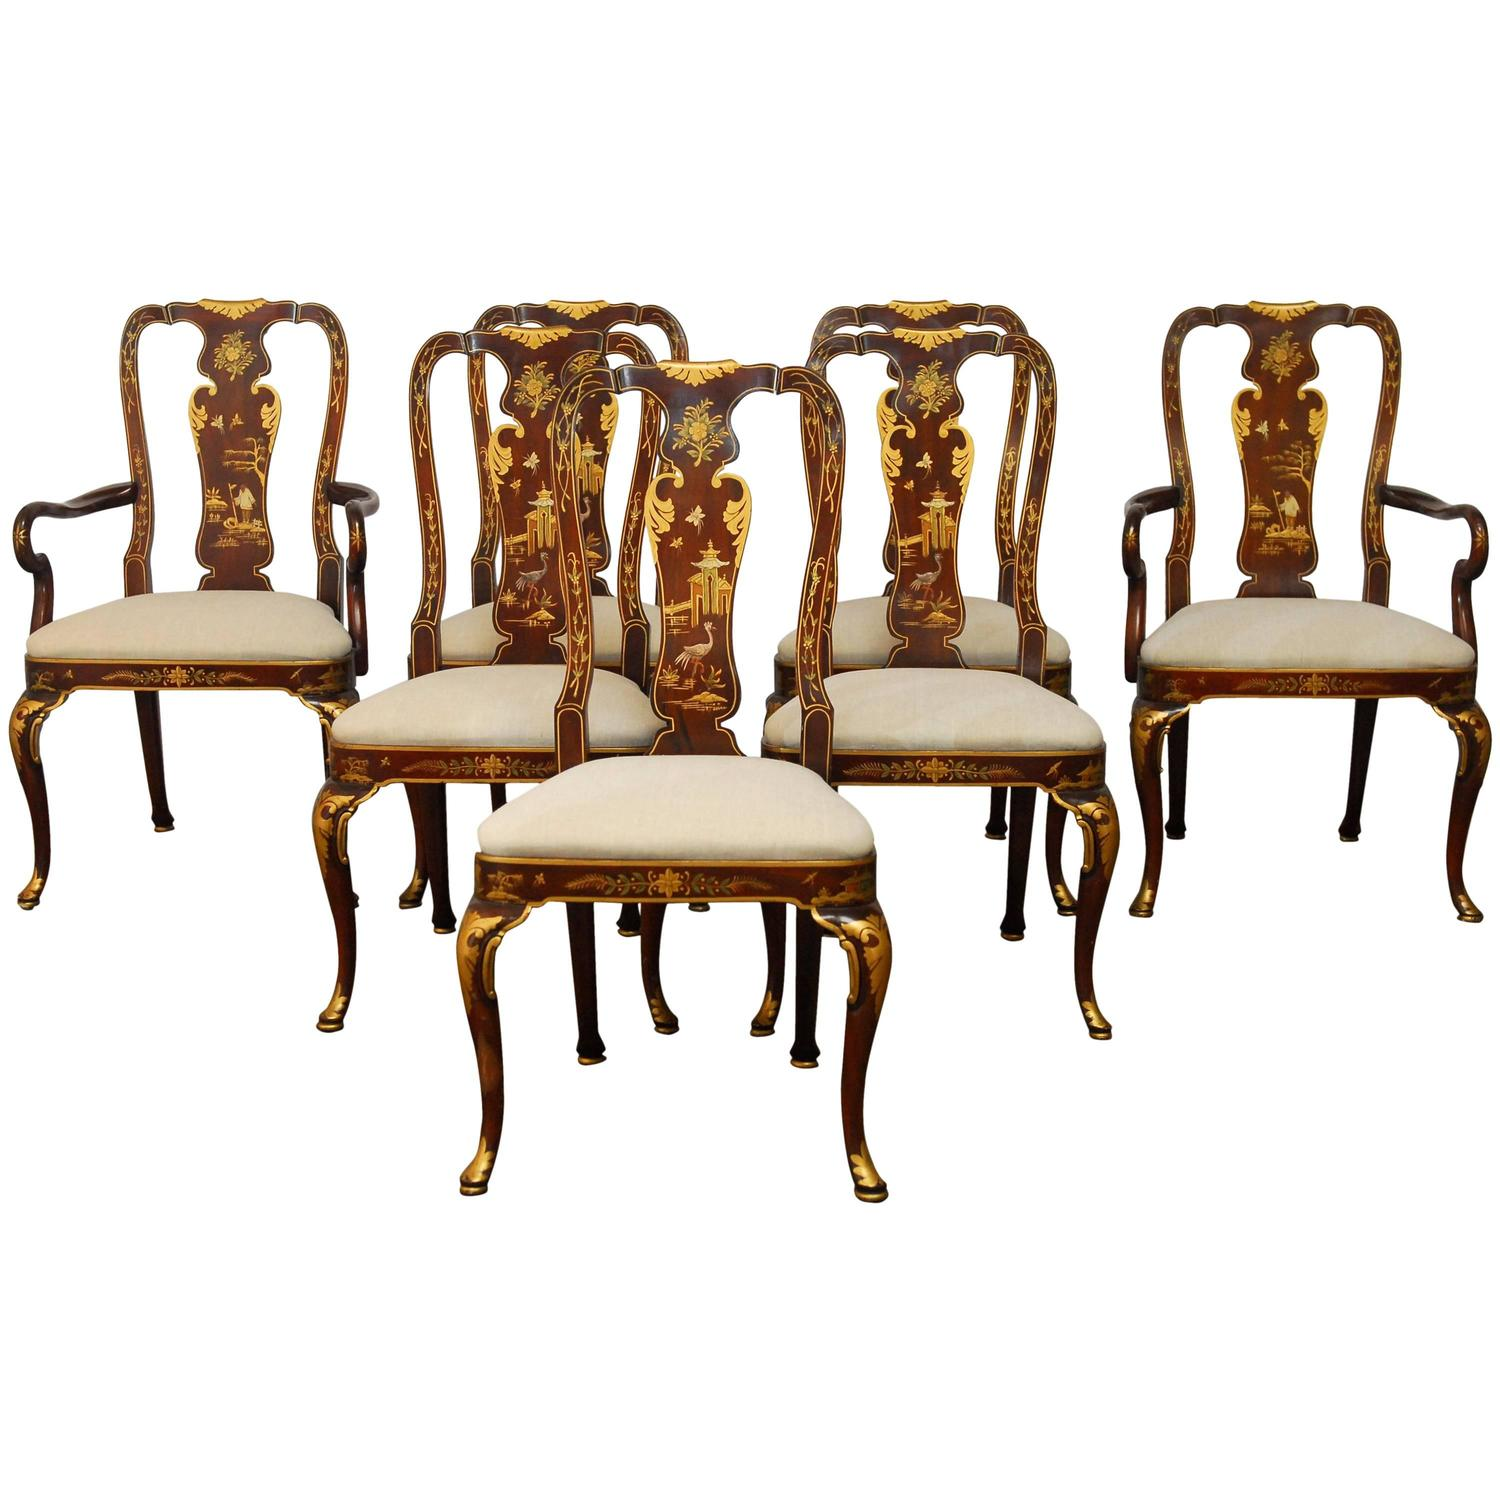 Set of seven chinoiserie queen anne dining chairs at 1stdibs for Queen anne dining room